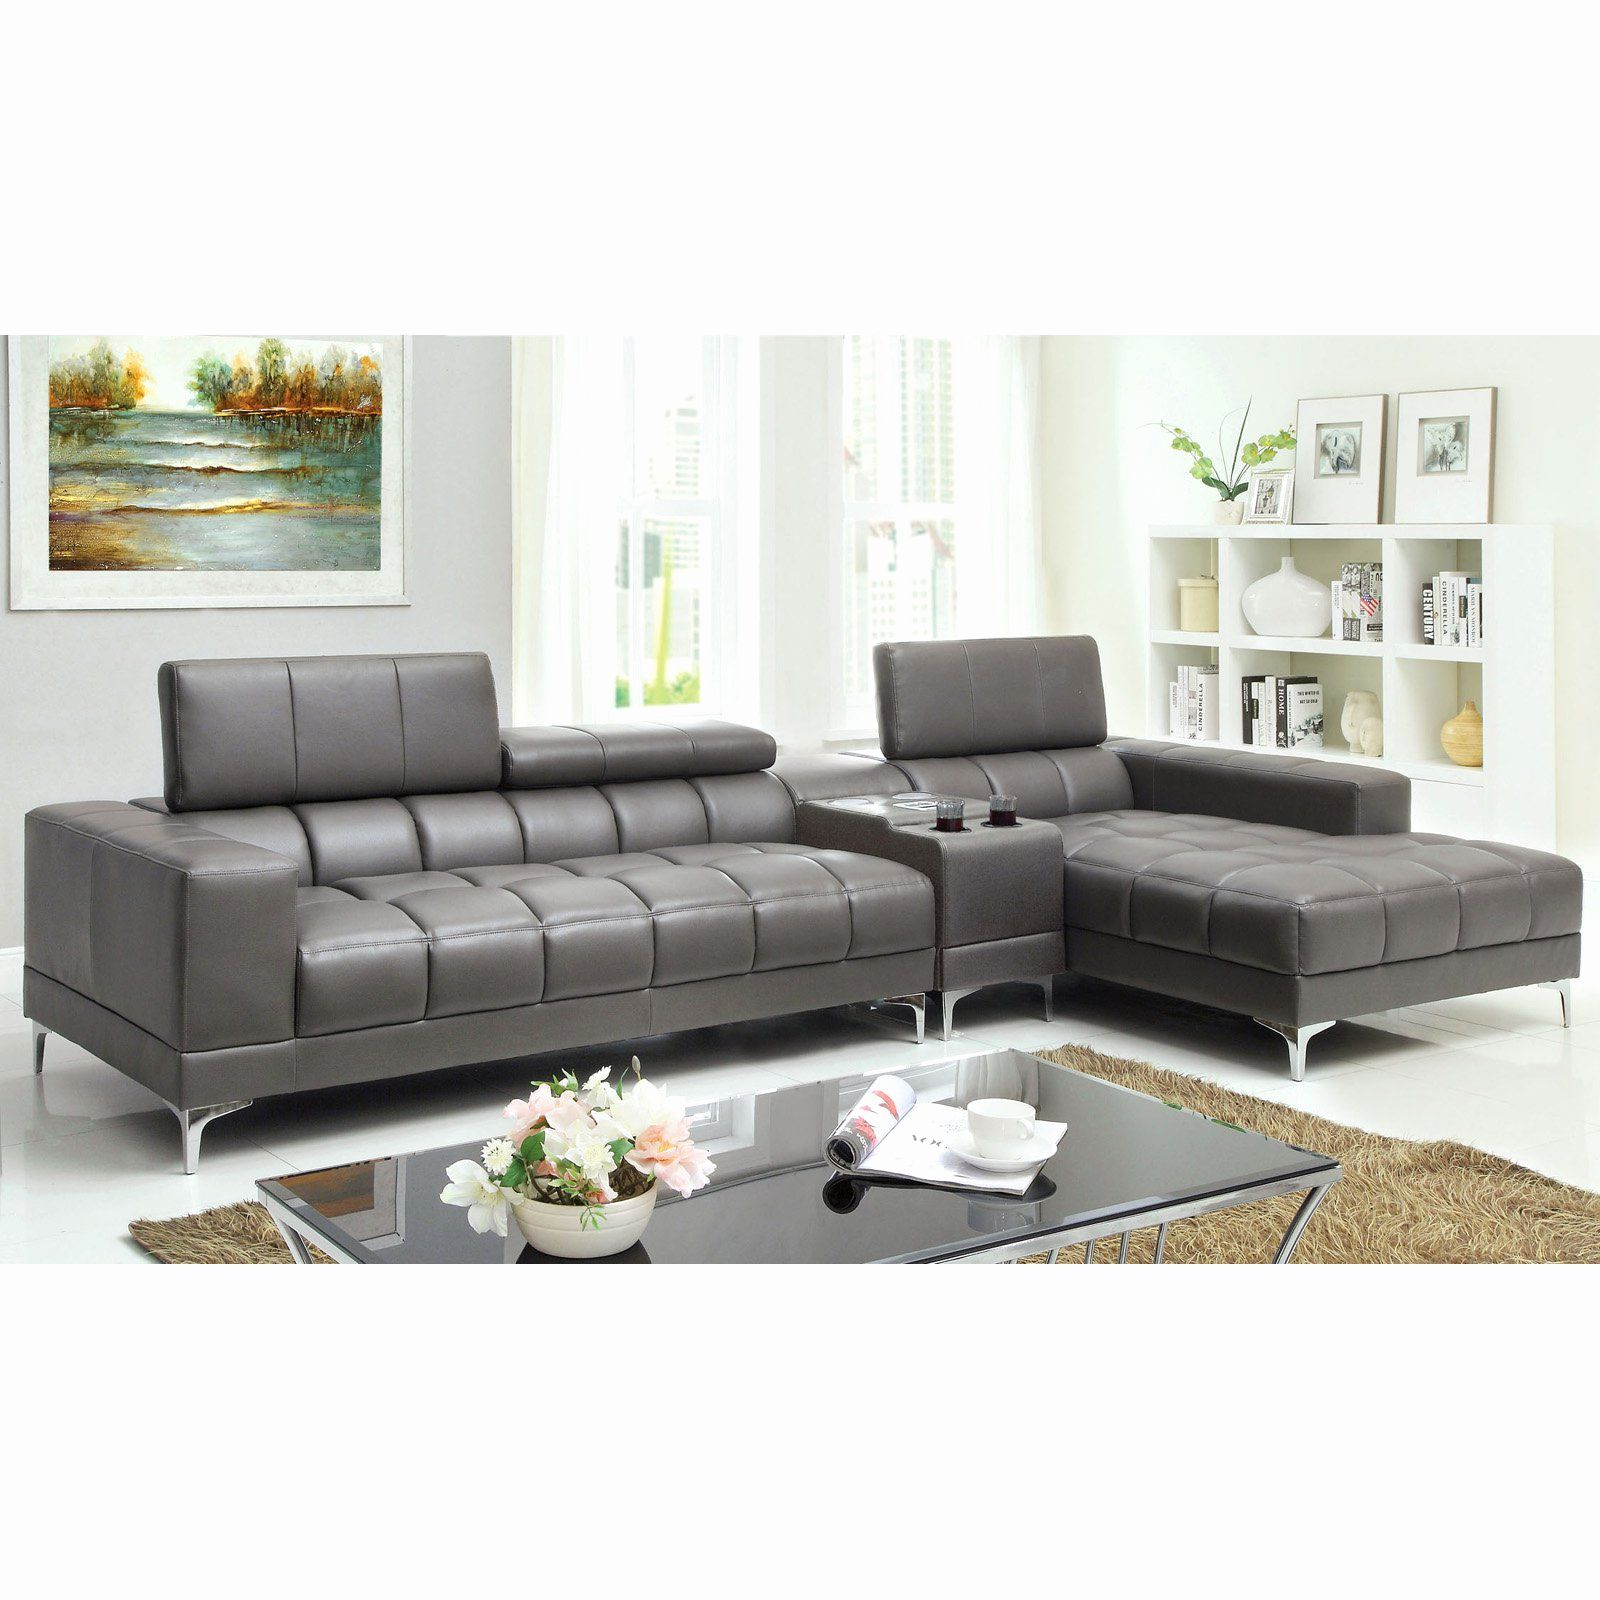 Good Contemporary Leather Sectional Sofa Picture Contemporary Leather Sectional Sofa Beautiful Sectional Sofa With Chaise Sectional Sofa 2 Piece Sectional Sofa